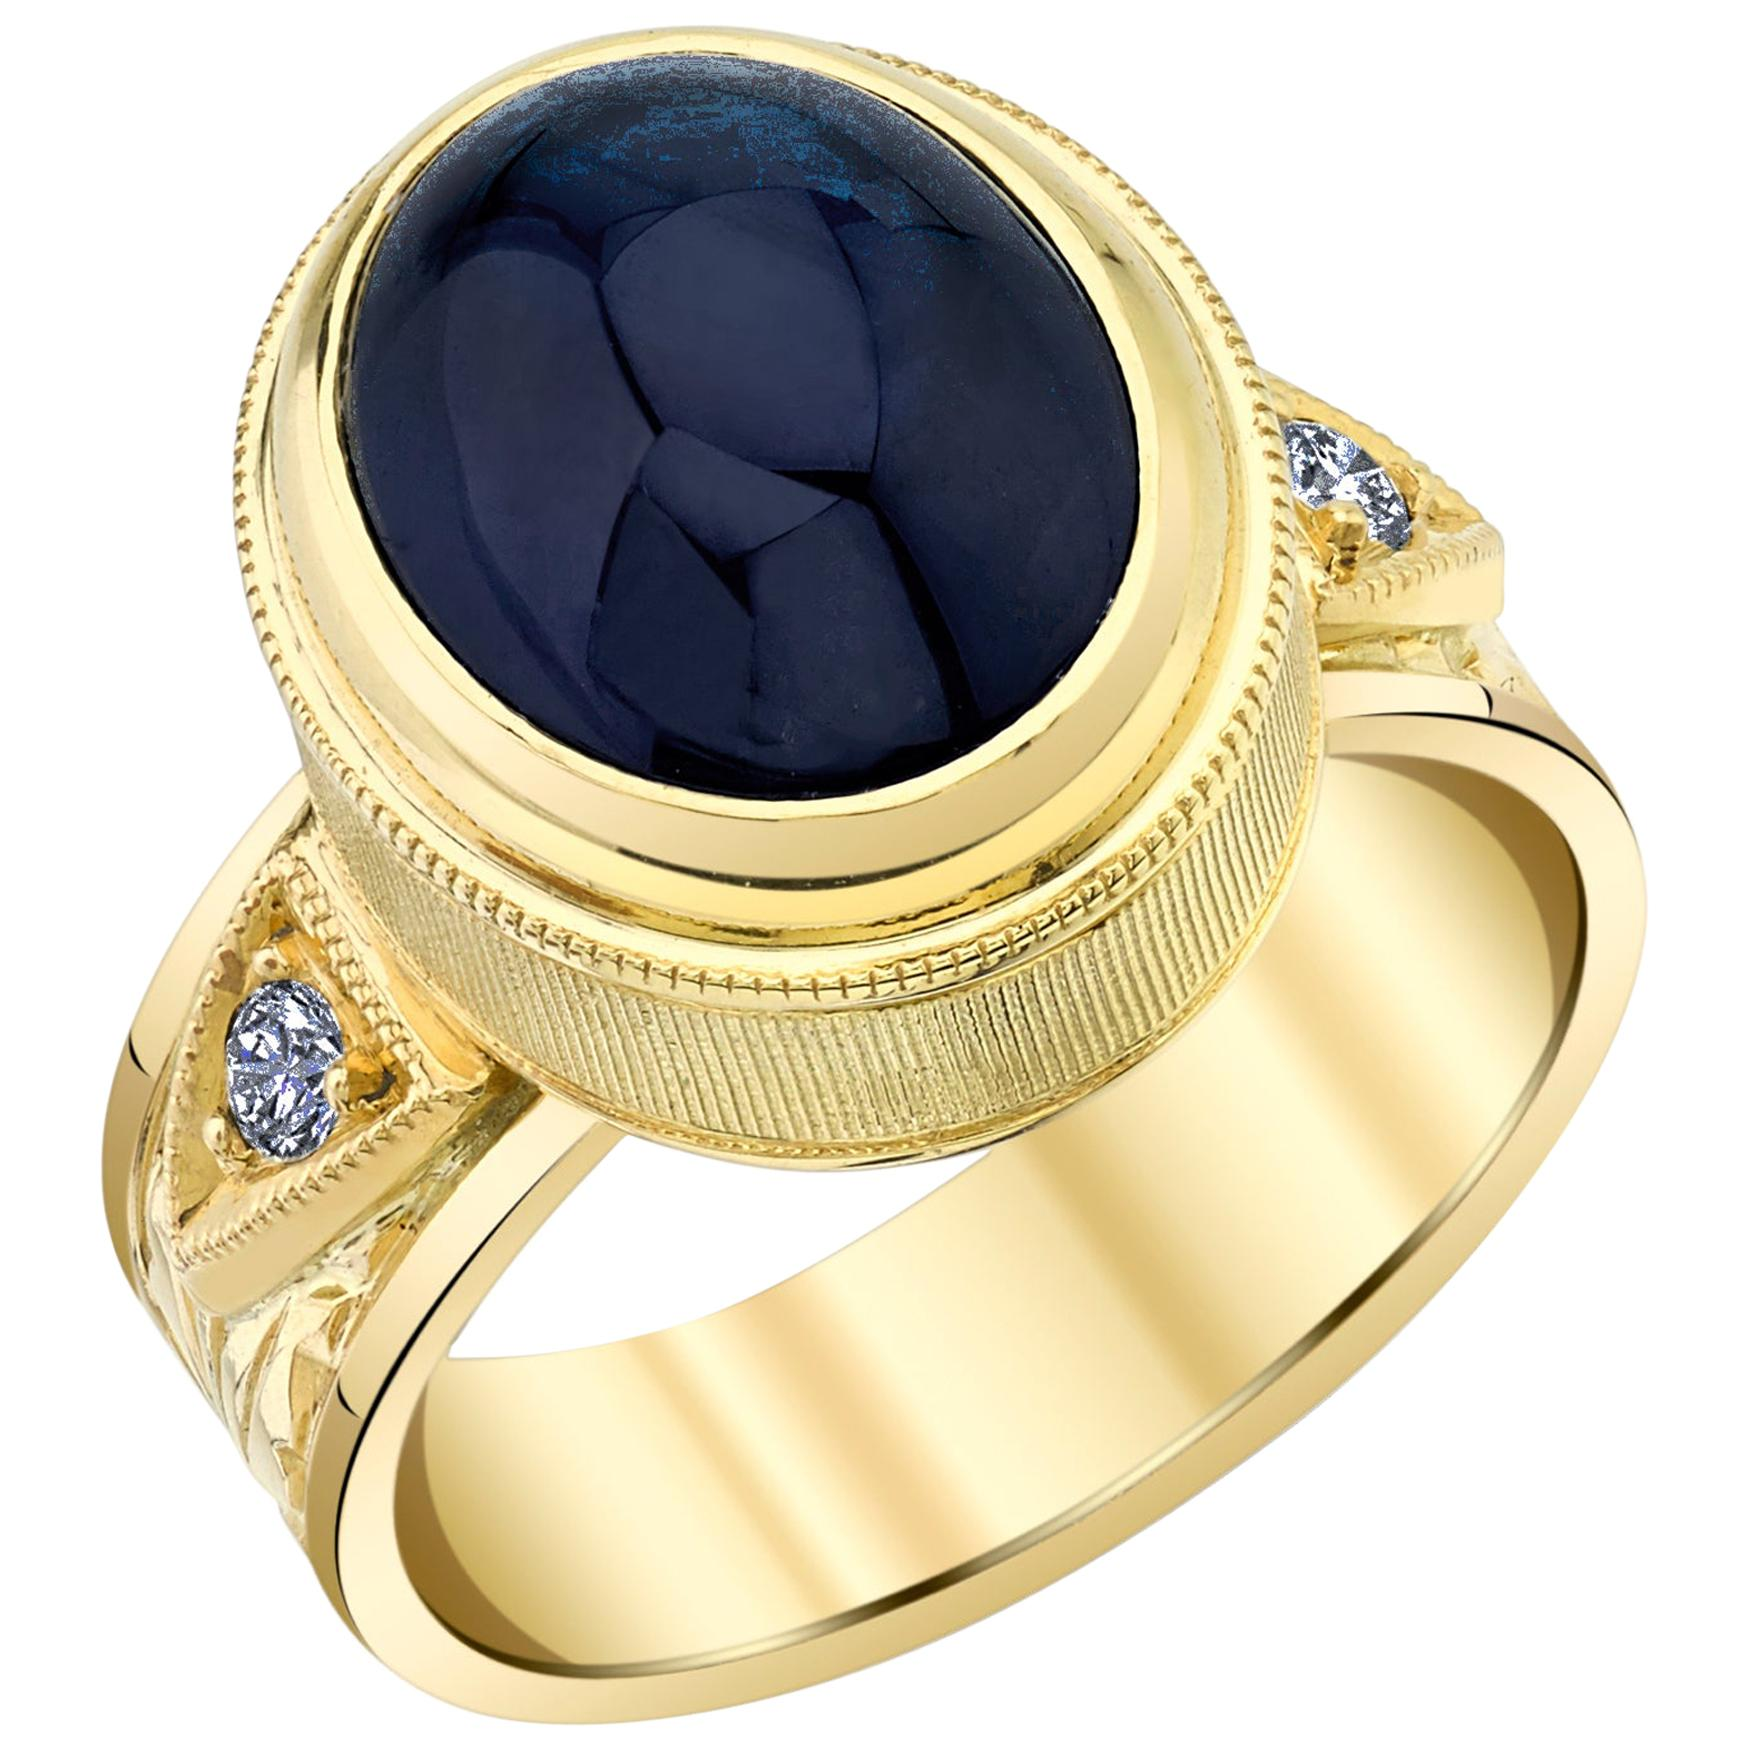 9.06 Carat Blue Sapphire Cabochon and Diamond, Yellow Gold Bezel Dome Band Ring